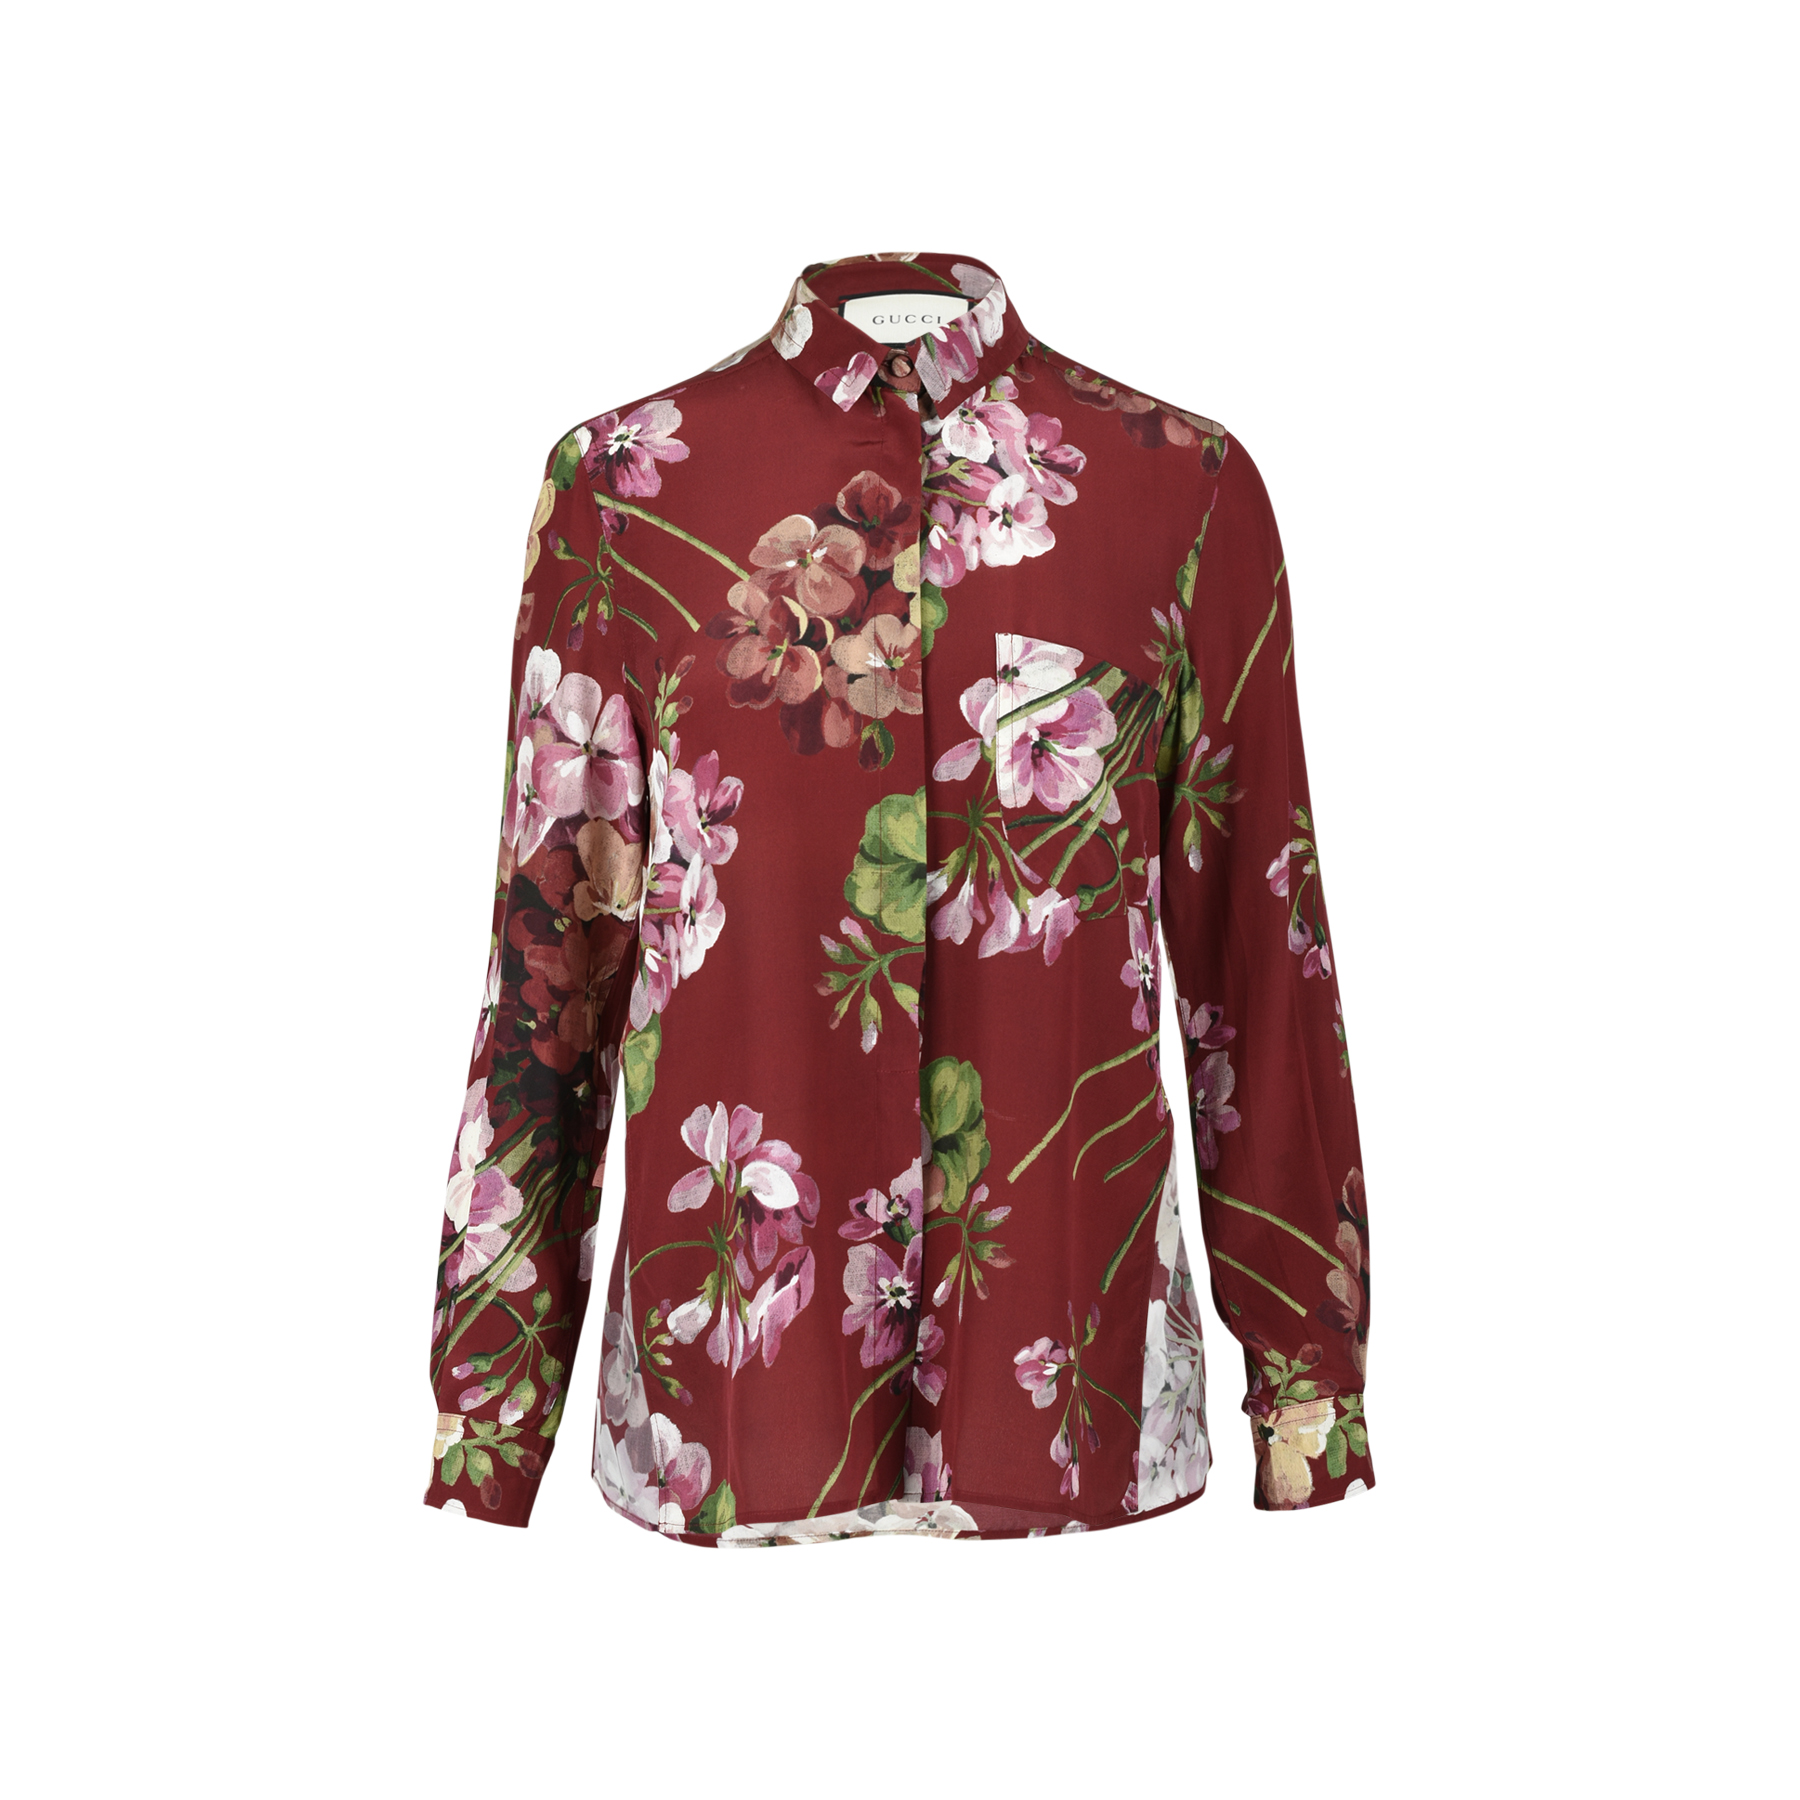 ab3e62a75 Authentic Second Hand Gucci Bloom Floral Shirt (PSS-051-00362) | THE FIFTH  COLLECTION